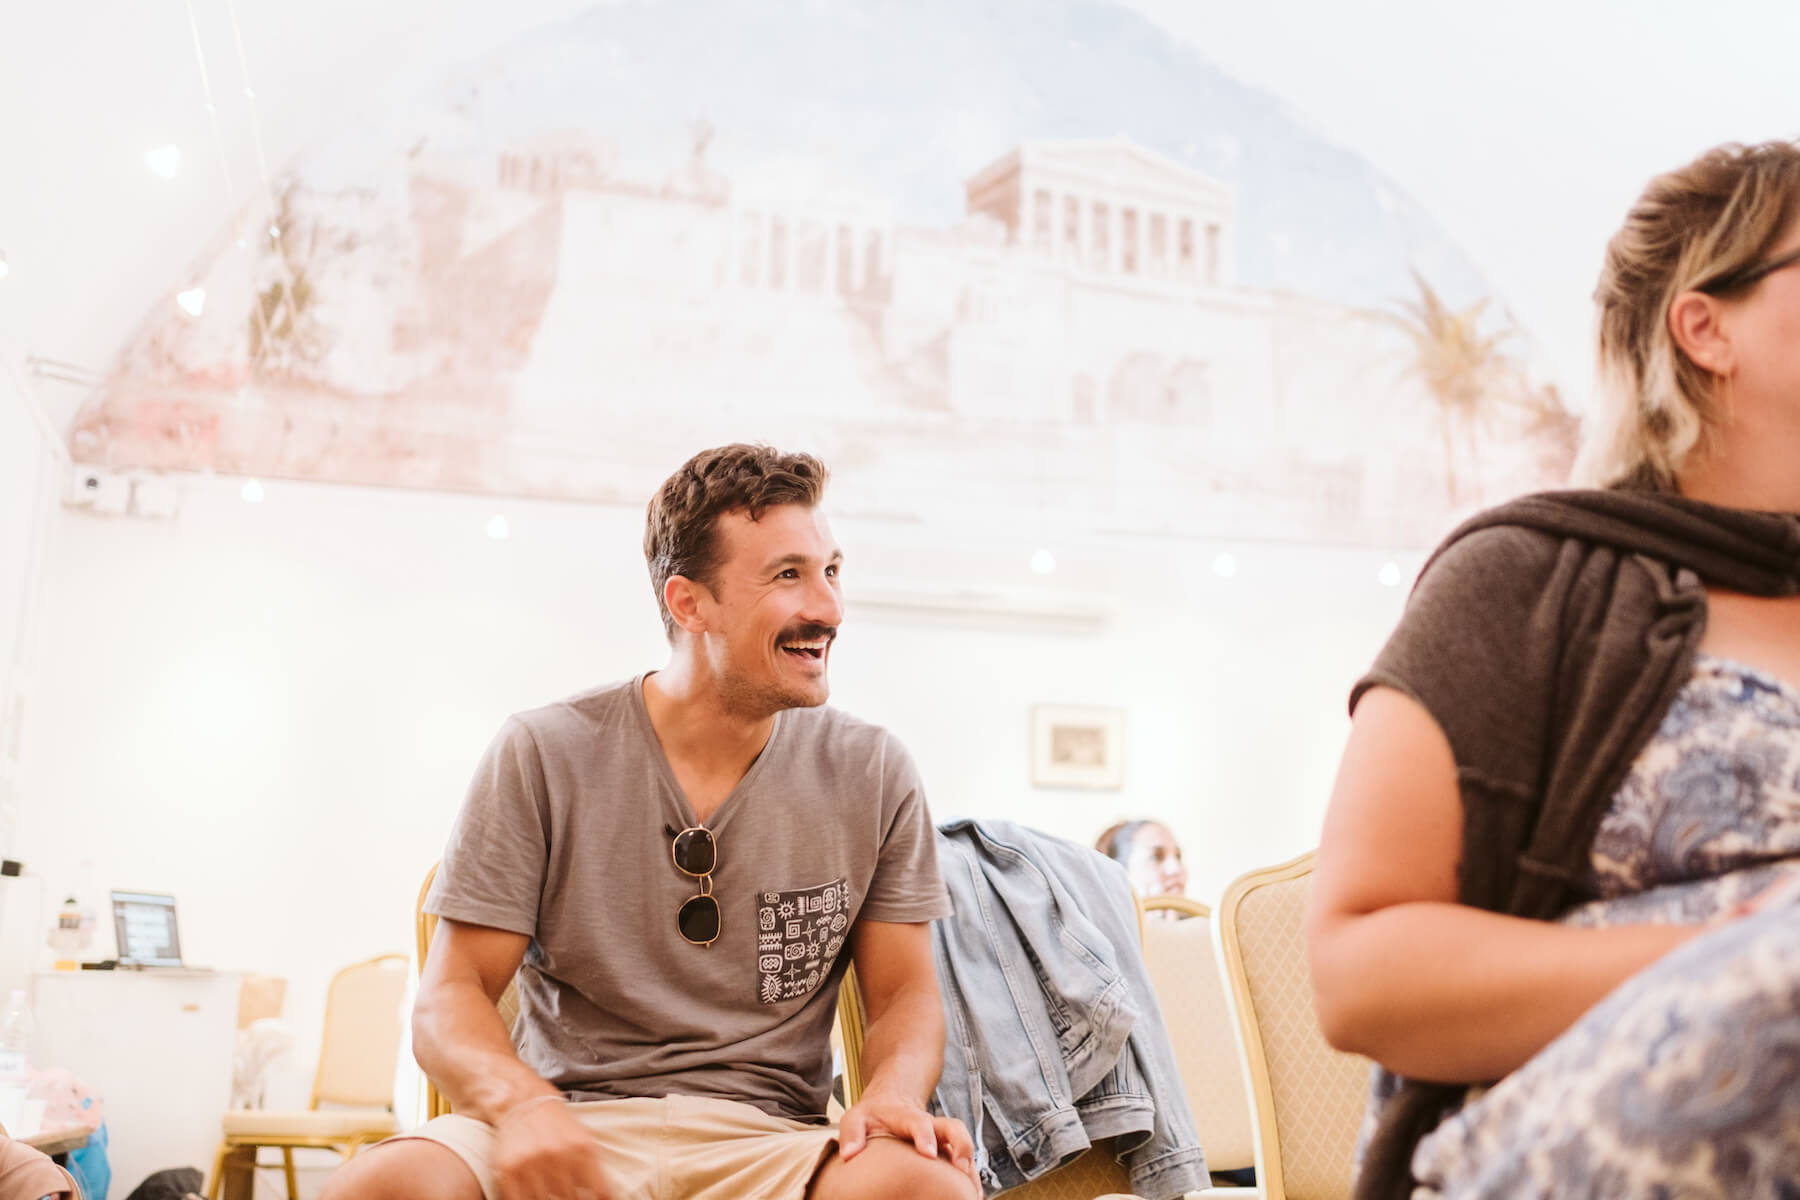 Man laughing while seated in a conference room in Santorini, Greece